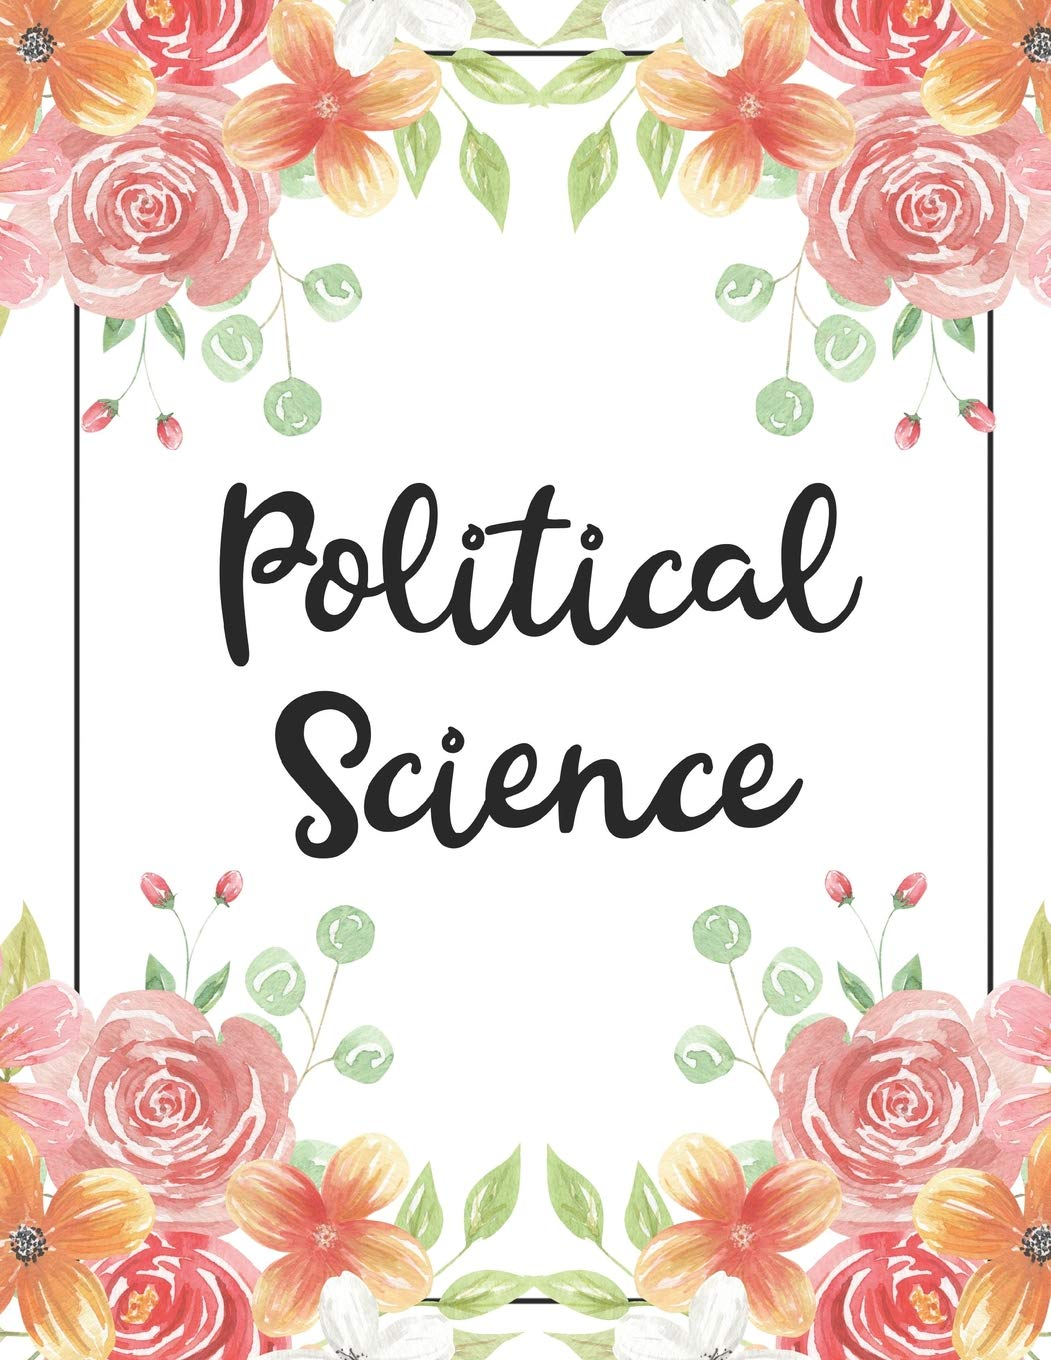 Political Science 100 Pages College Ruled 8 5 X 11 Notebook 1 Subject Flower Chic For Students Teachers Ta S Note Taking High School College Publishing Bison Bird 9781093340037 Amazon Com Books